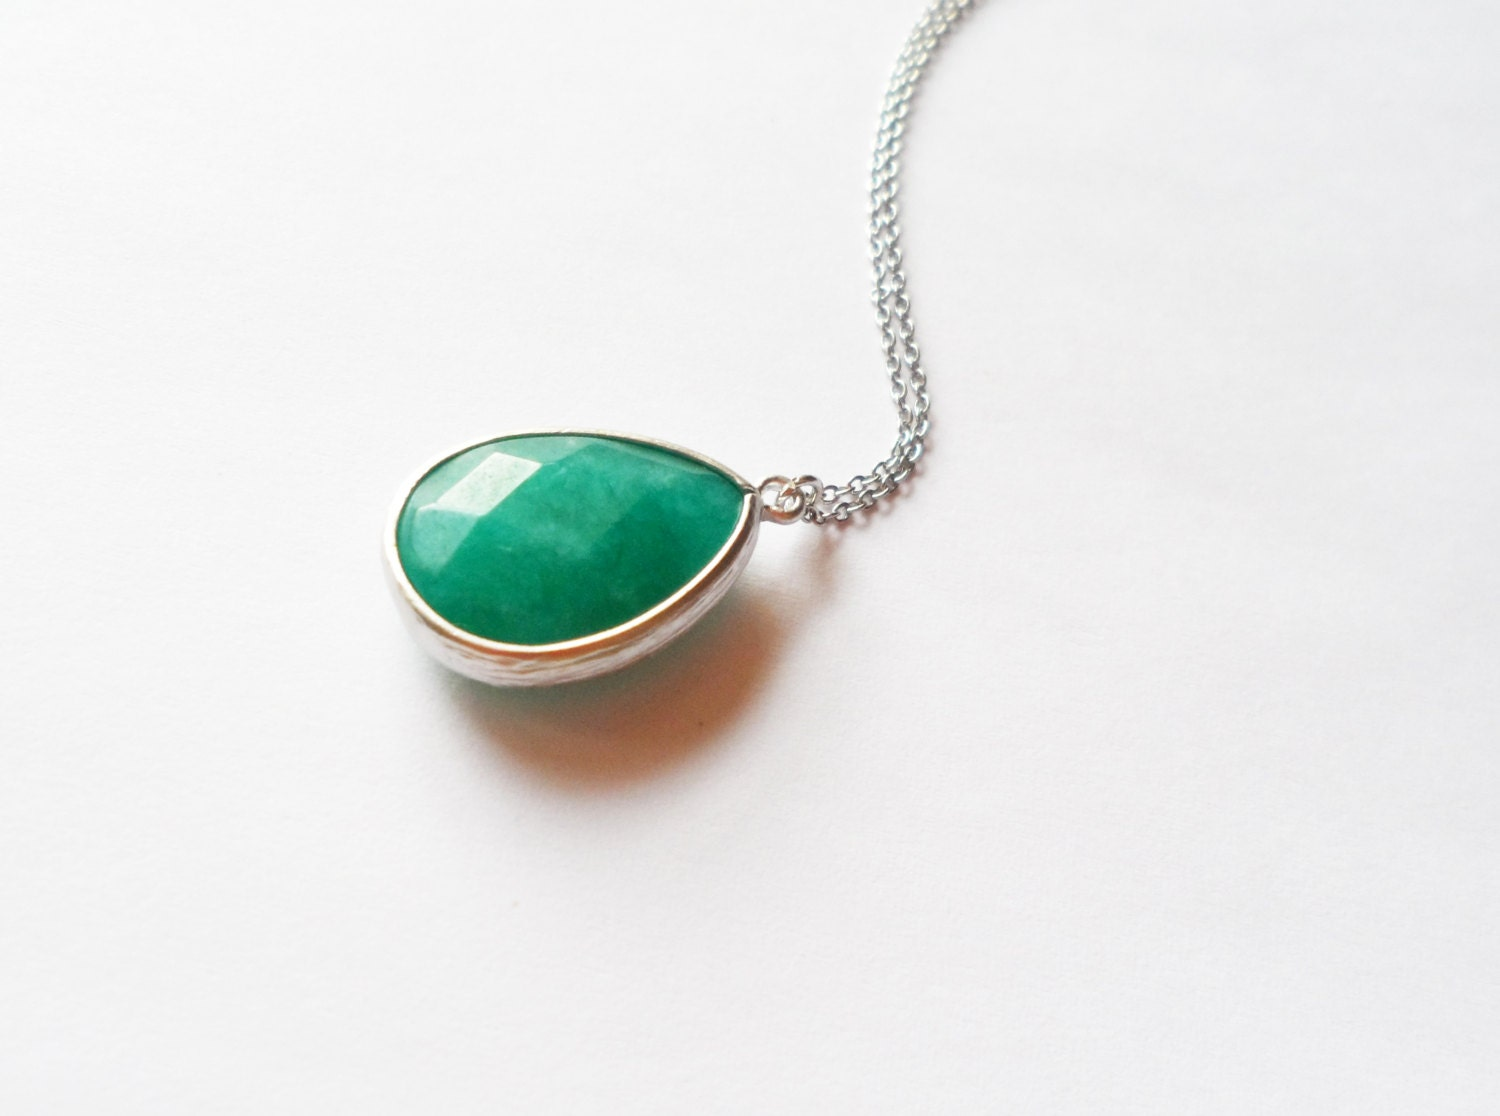 grass green drop framed gemstone necklace glossy metal dainty minimal jewerly white gold plated chain simple gift for her under 20 delicate - carnivalamigo